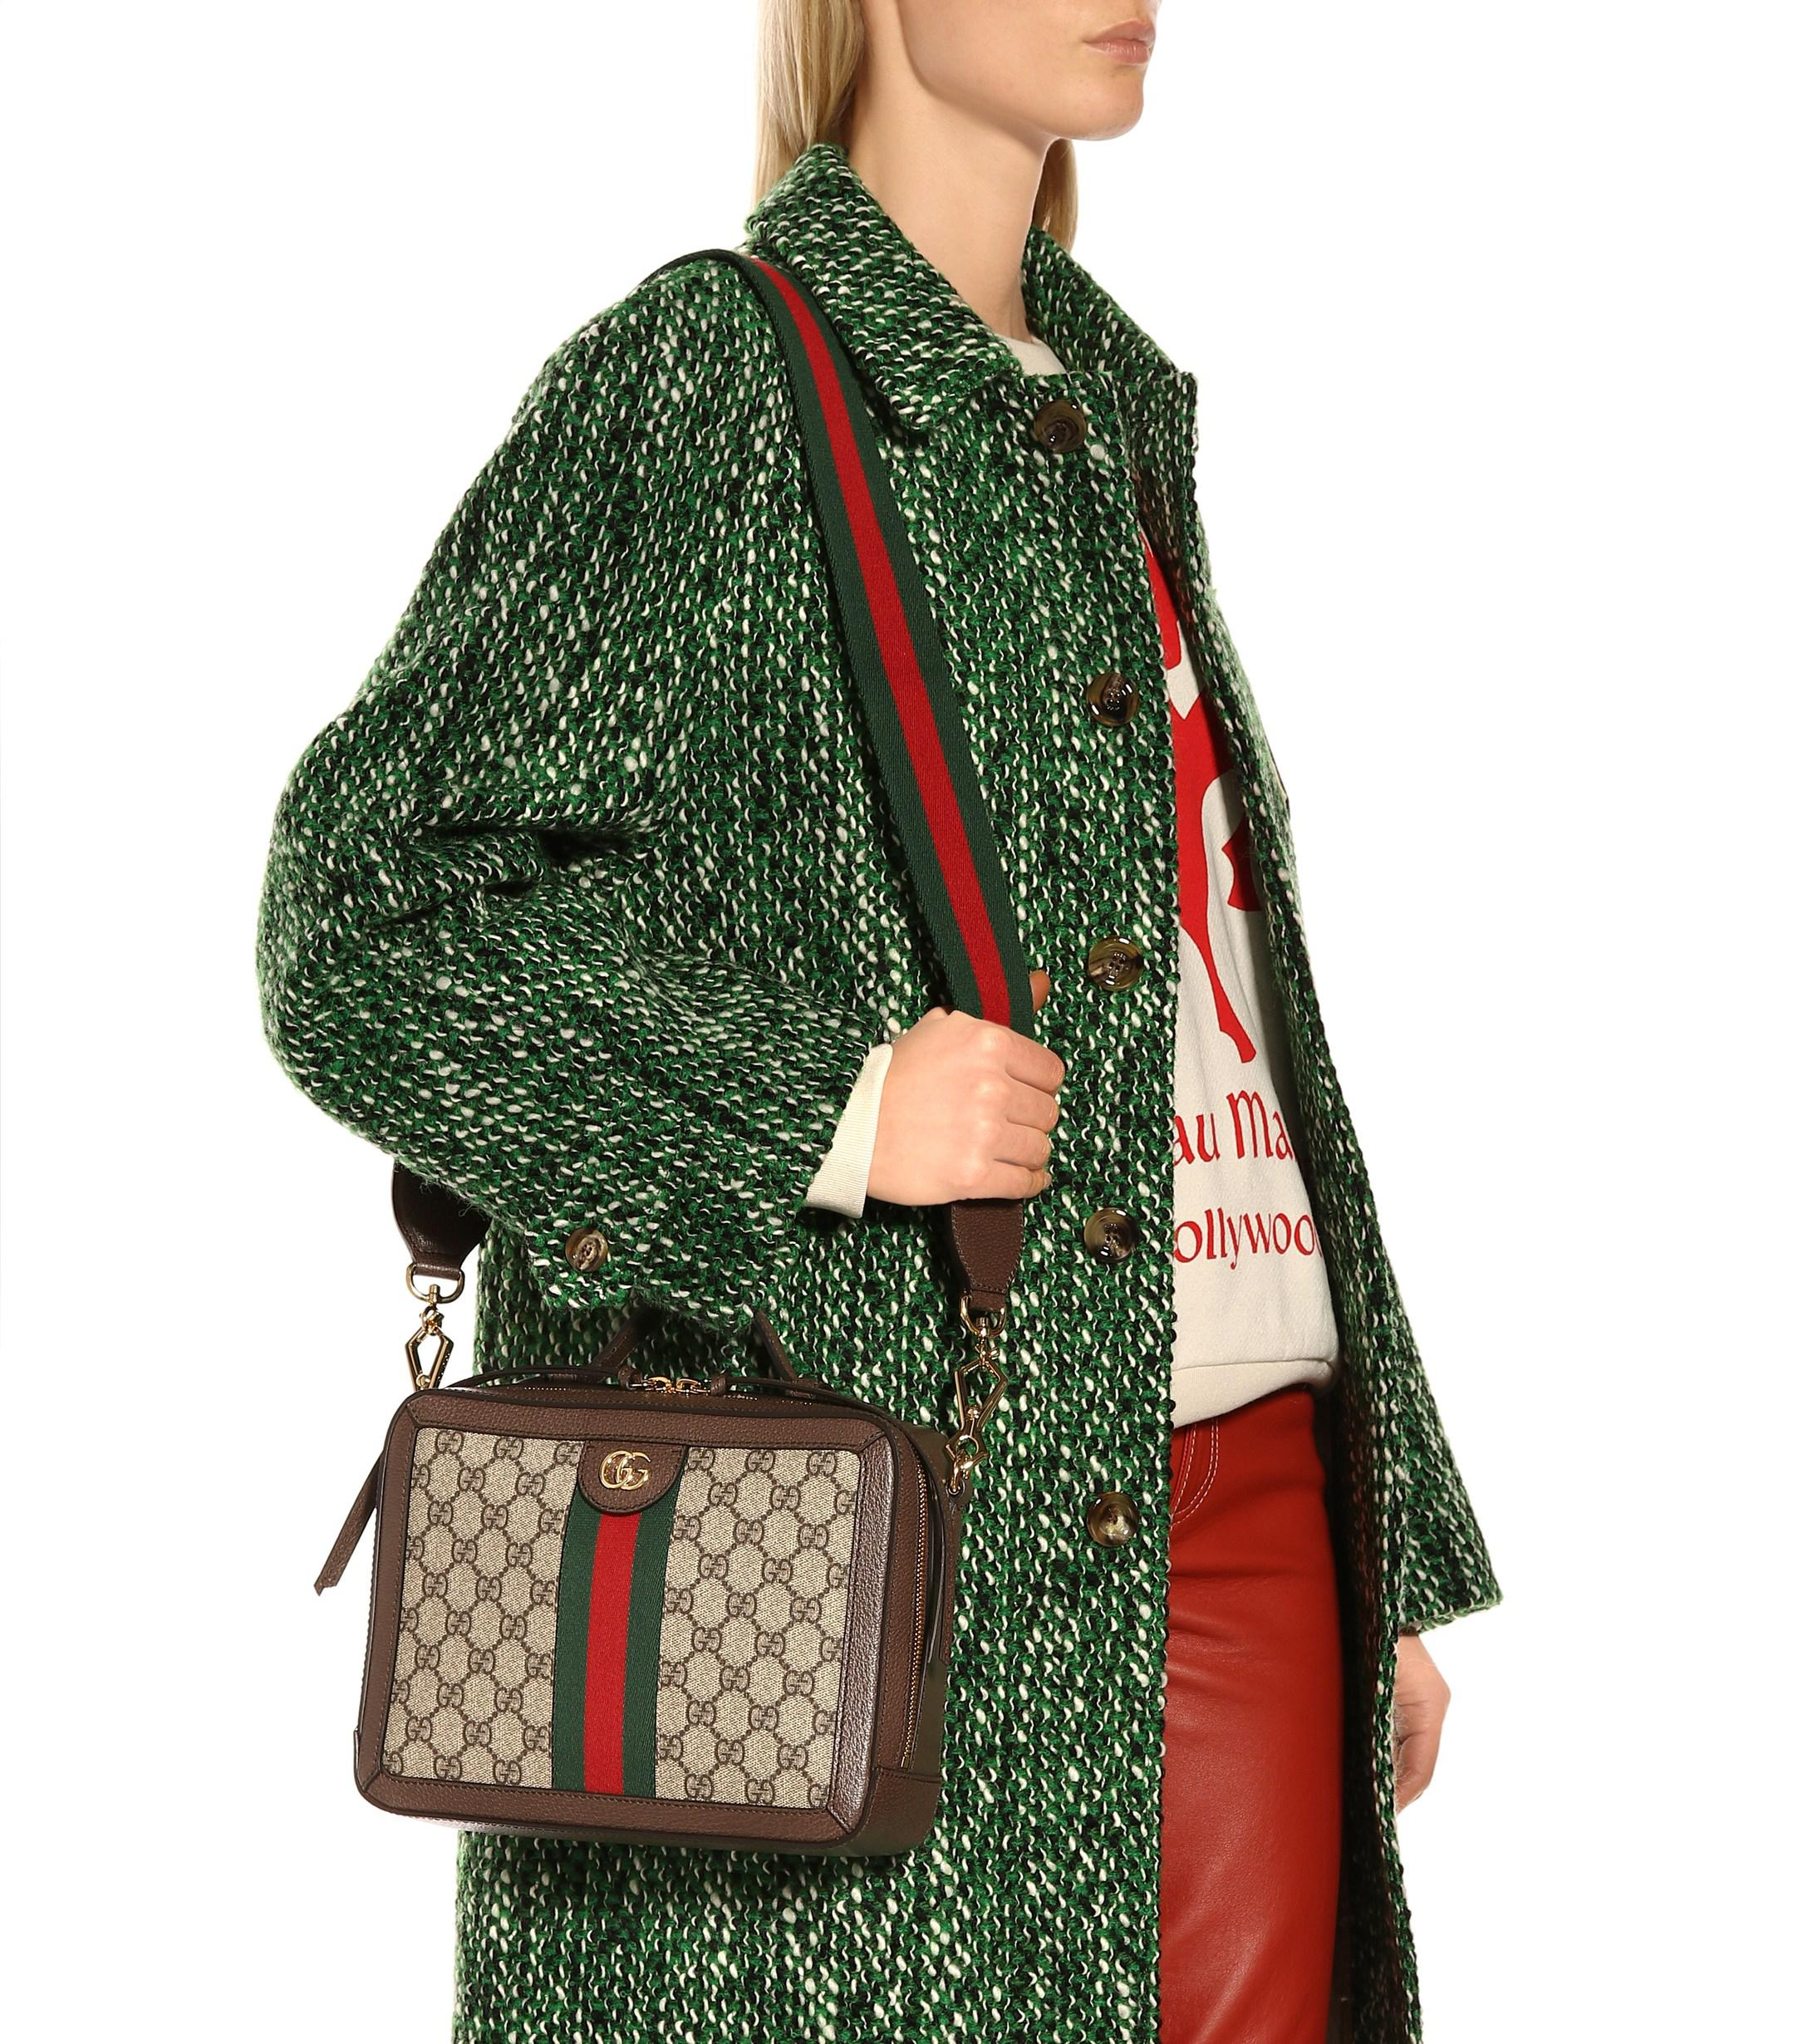 f52699d8a9f838 Gucci - Multicolor Ophidia Small GG Supreme Shoulder Bag - Lyst. View  fullscreen